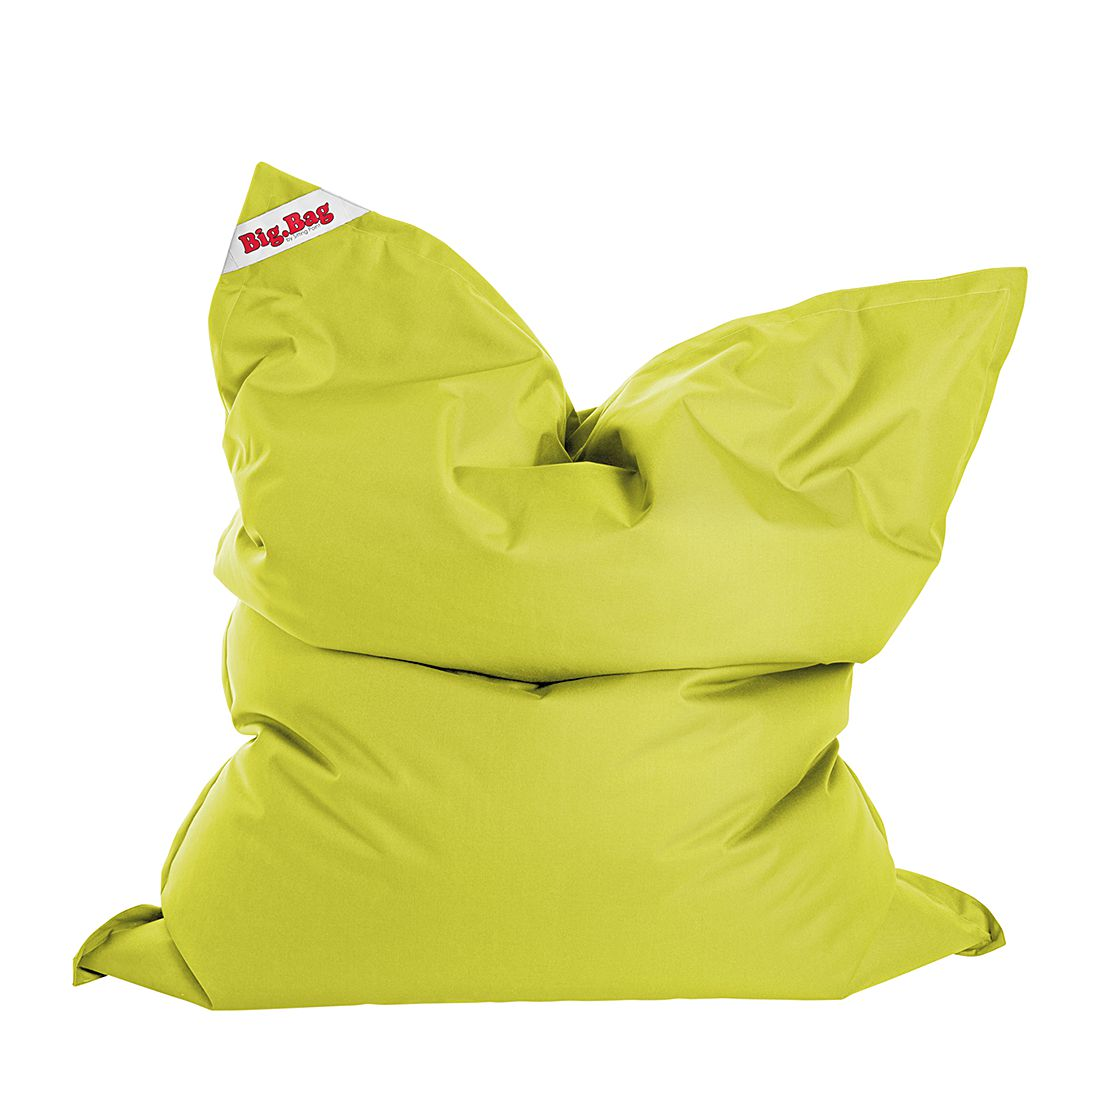 goedkoop Zitzak Brava BIG BAG groen SITTING POINT